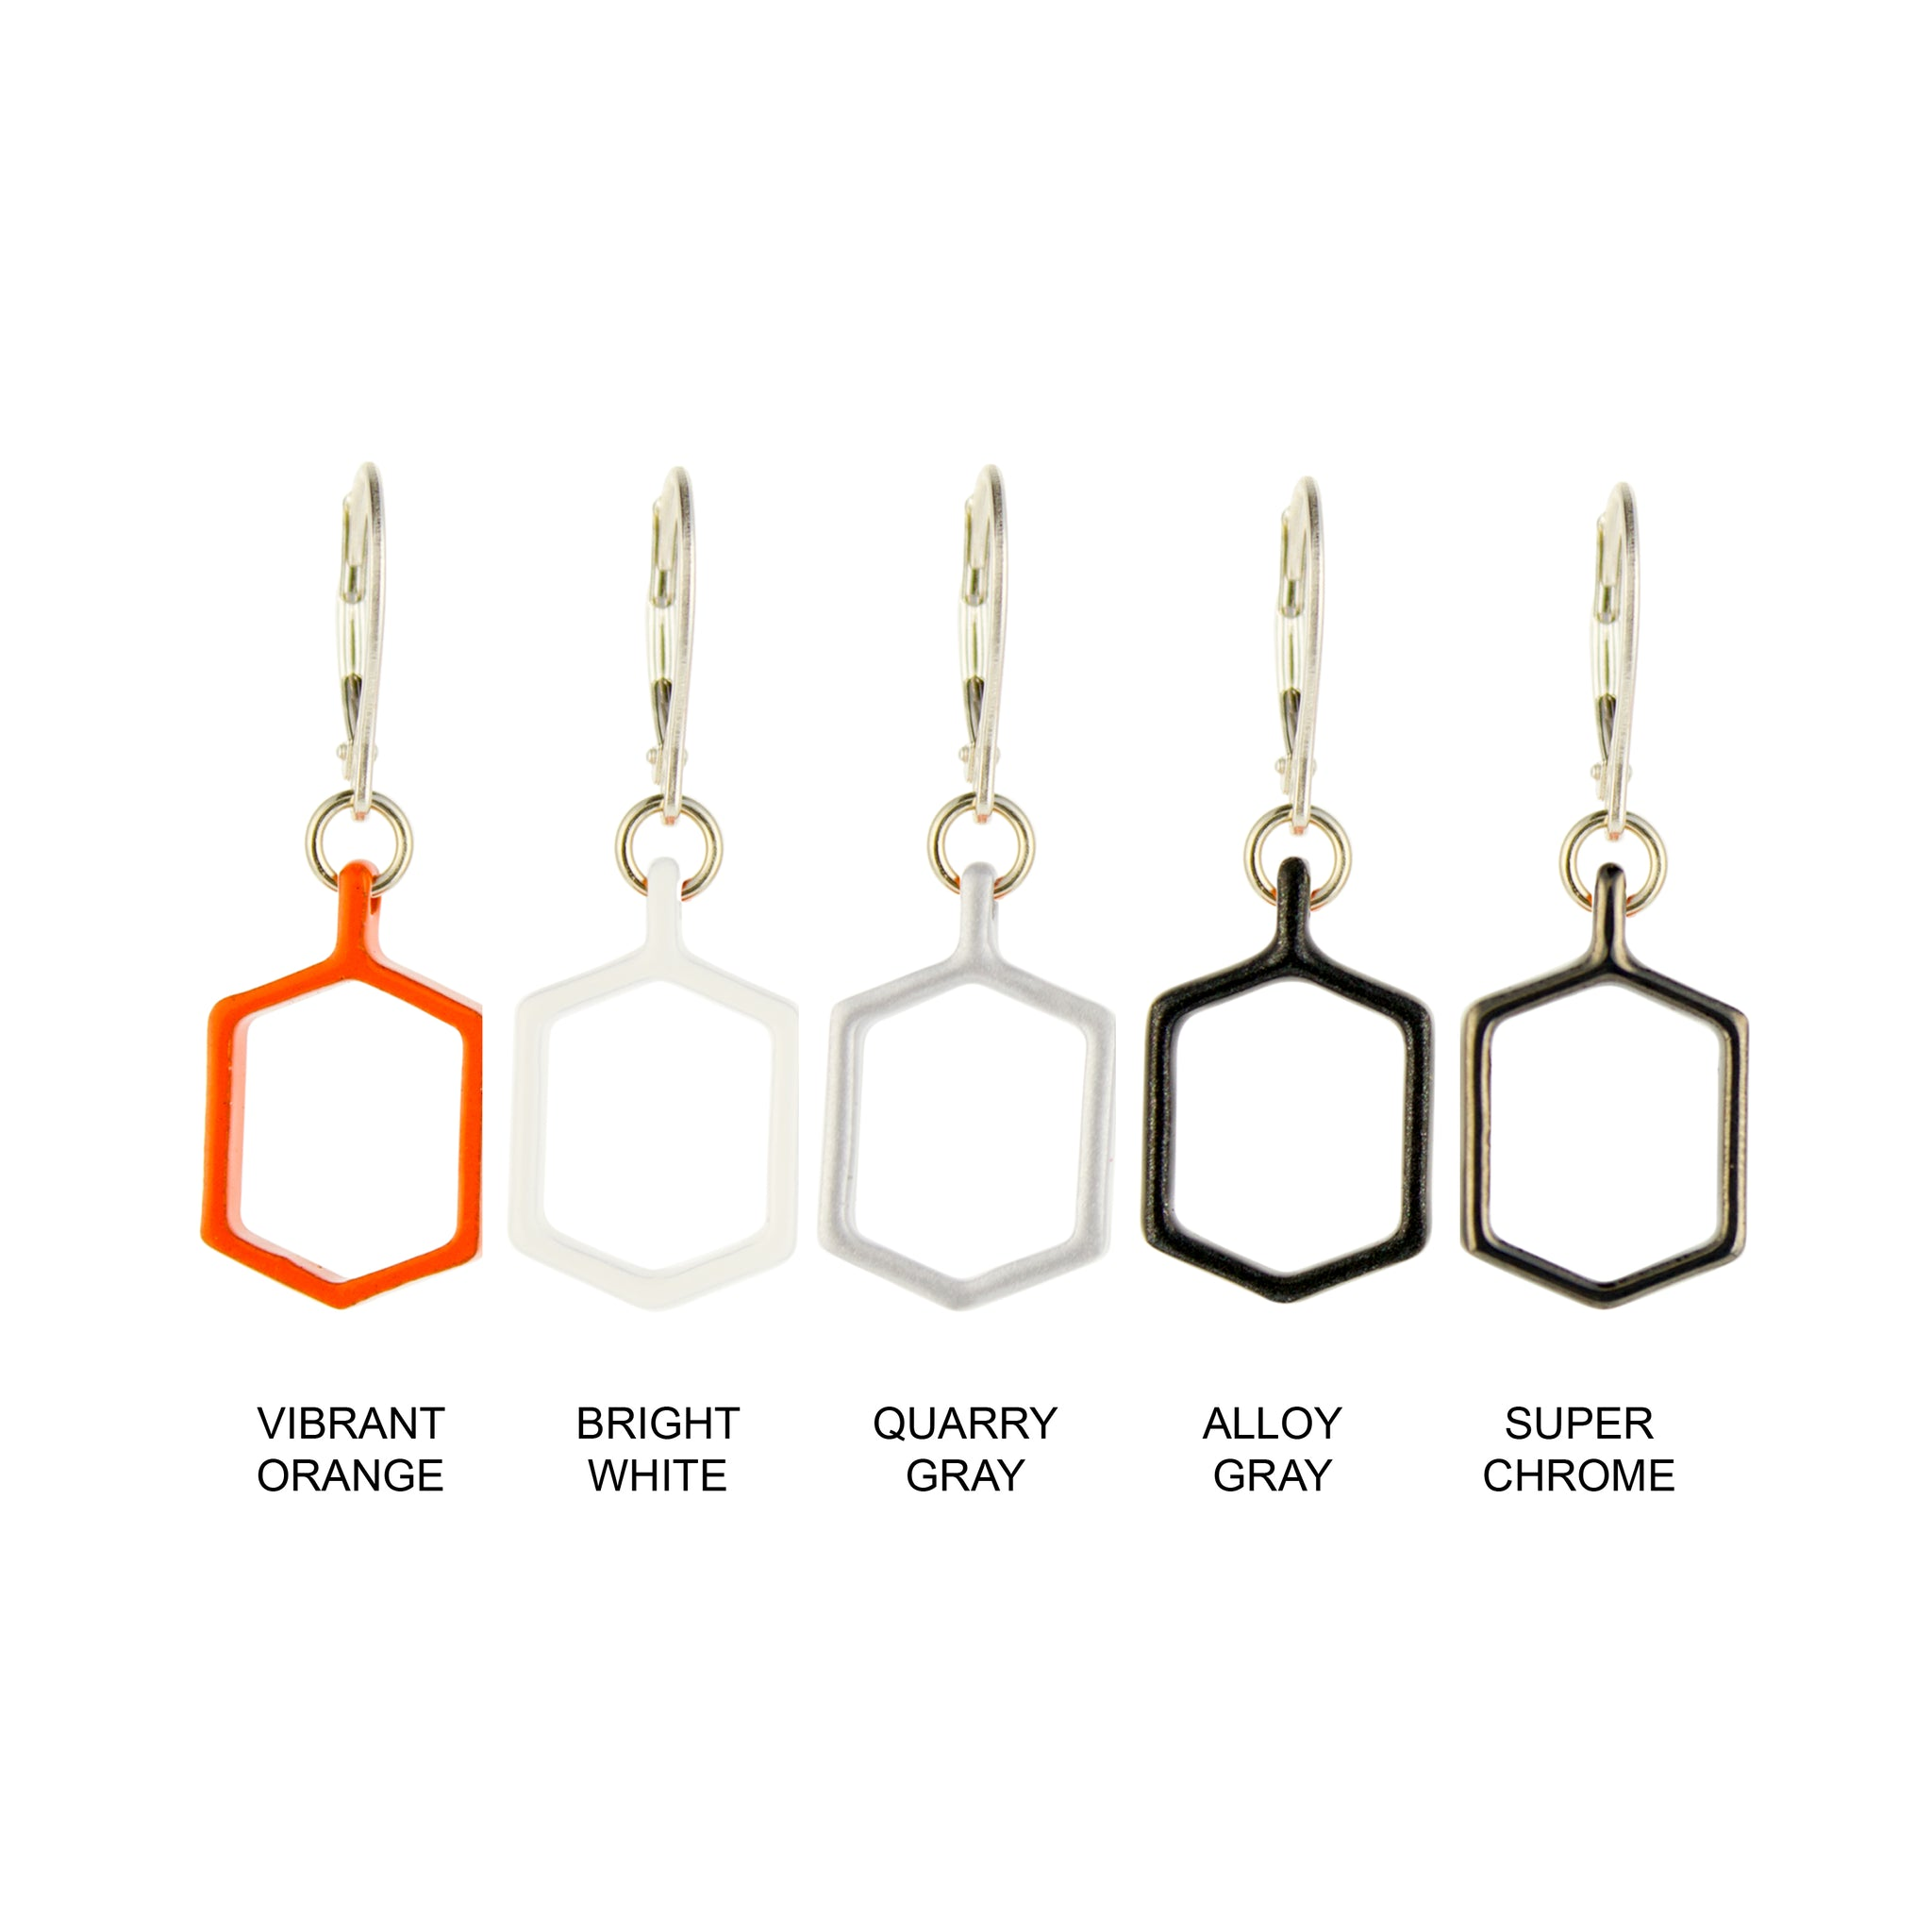 Super_Chrome - WITHIN x COMMON GROUND Earring Flat View Colorways